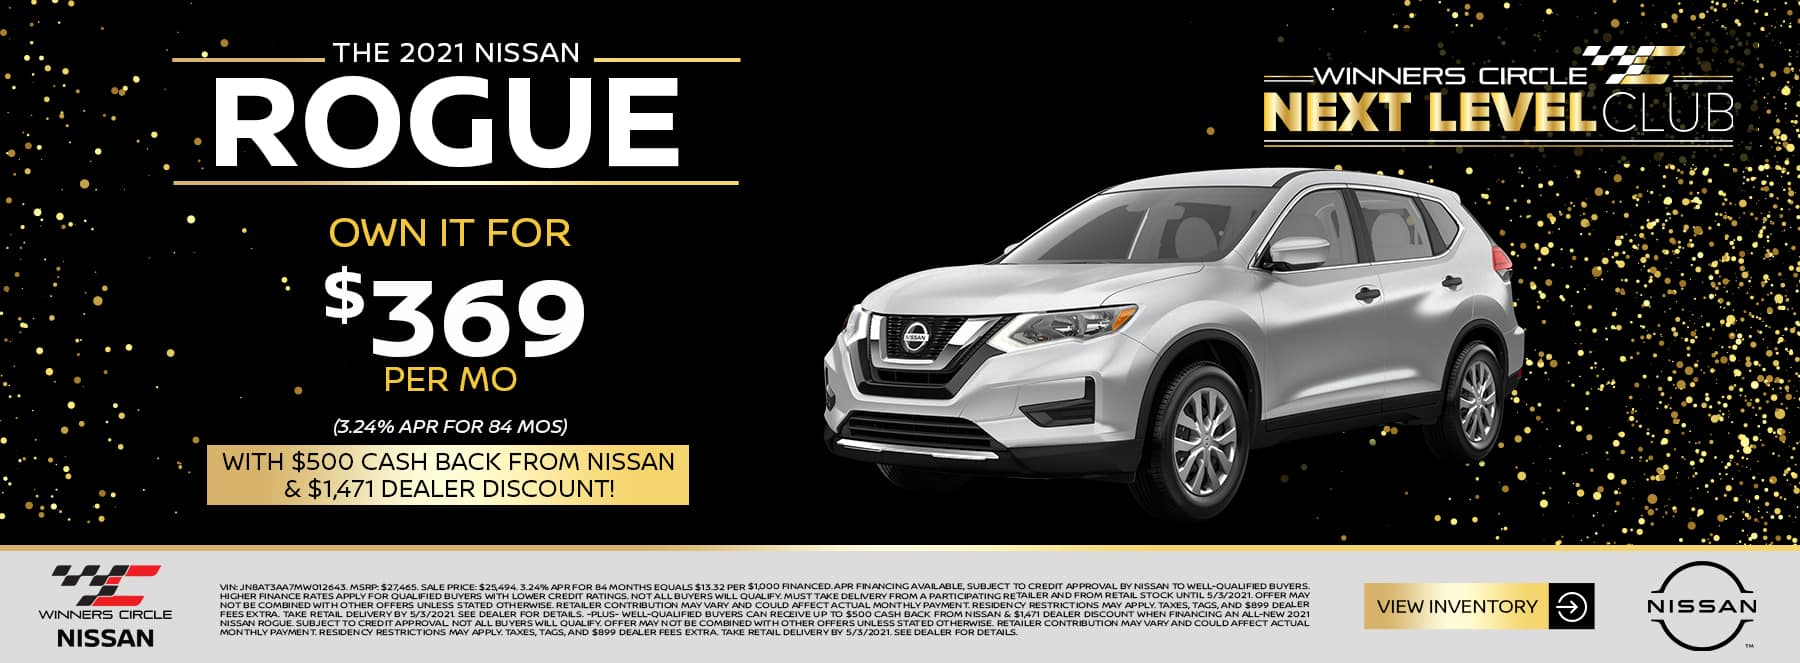 The 2021 Nissan Rogue - Own it for $369 per month (3.24% APR for 84 months) with $500 cash back from Nissan & $1,471 dealer discount!